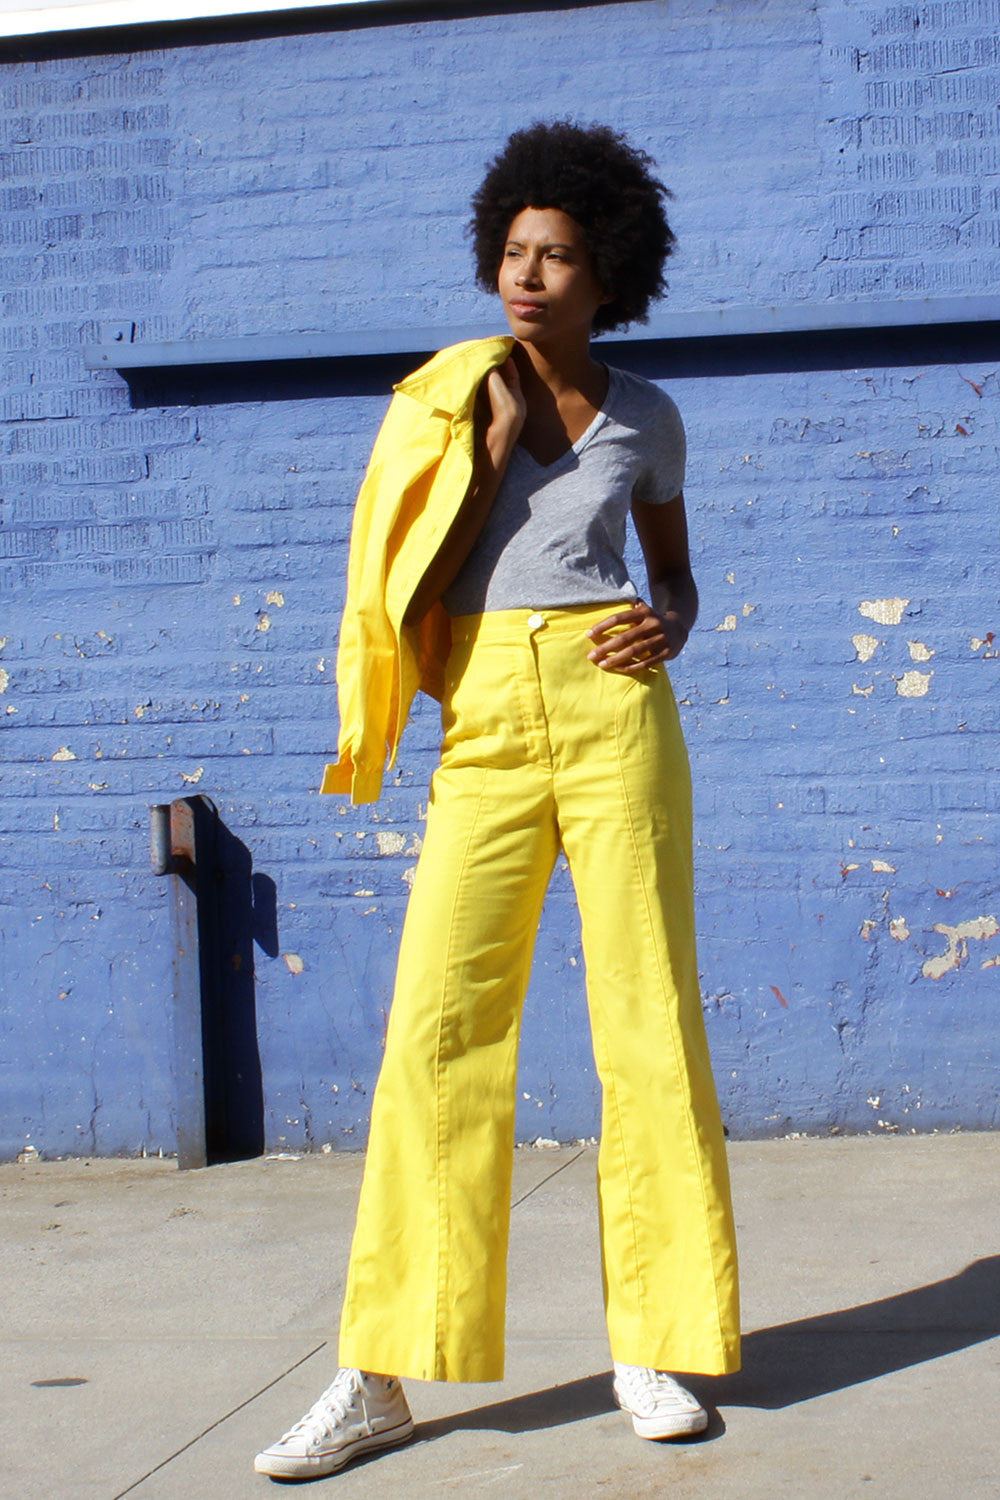 Banana Yellow 1970s Suit S